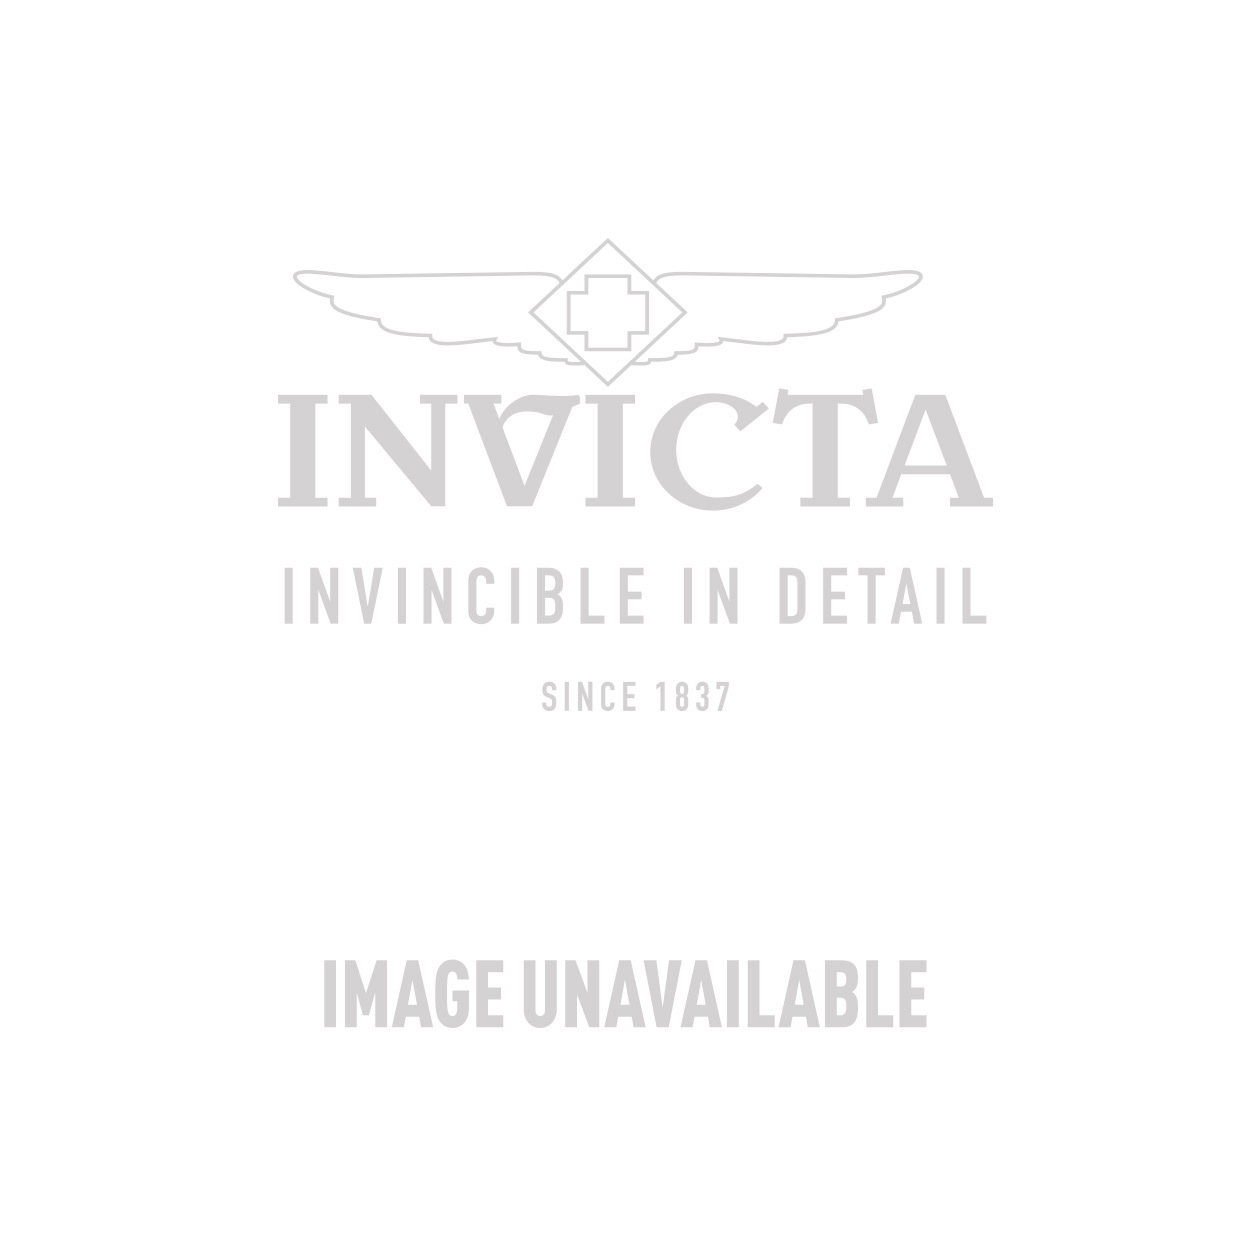 Invicta Russian Diver Mechanical Watch - Stainless Steel case with Steel, Black tone Stainless Steel, Polyurethane band - Model 1088